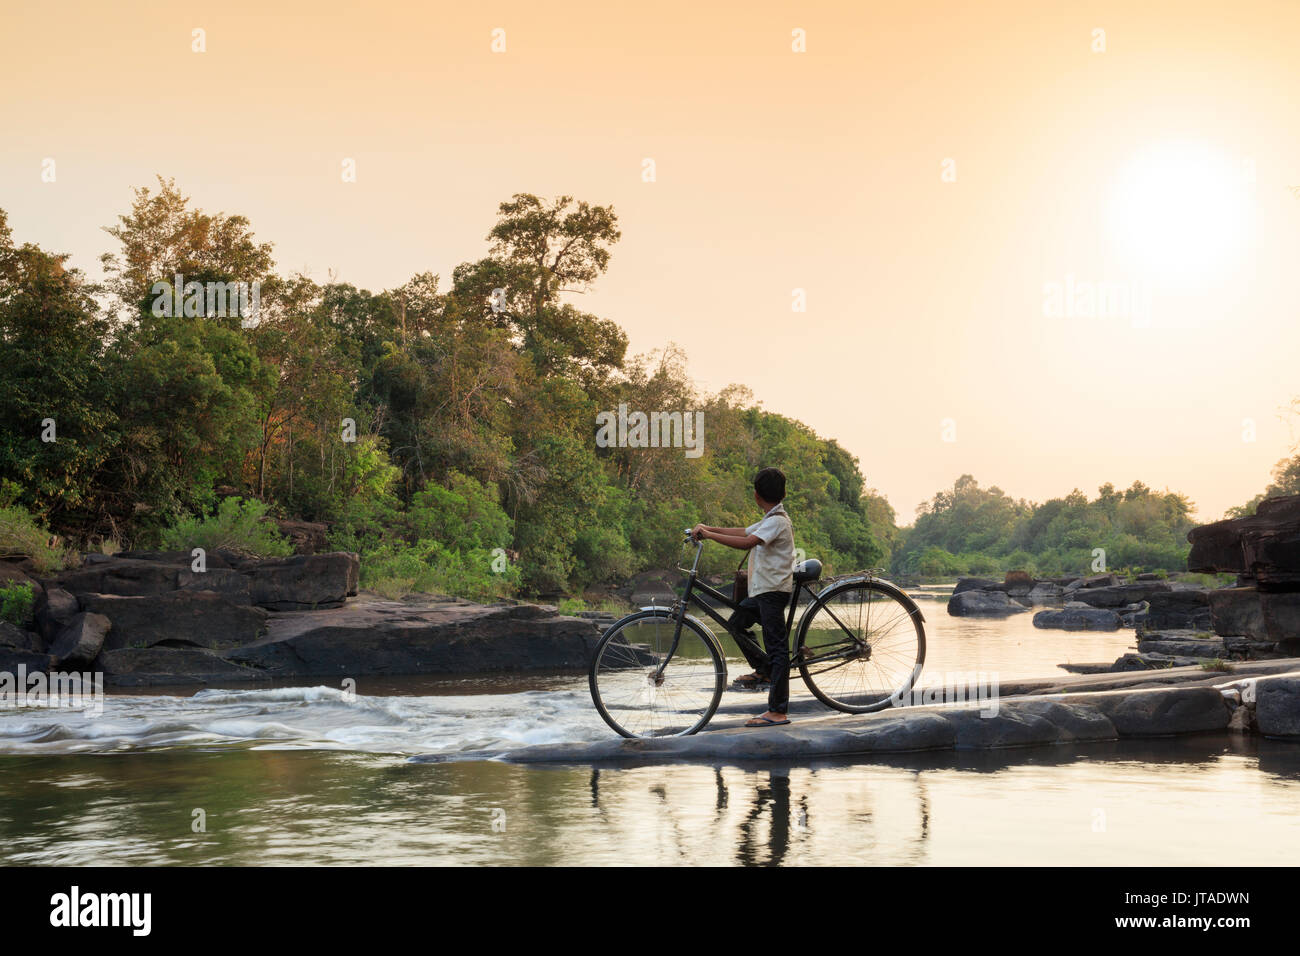 School boy on a bicycle traversant une rivière sur son chemin de l'école, Chi Phat, Koh Kong, le Cambodge, l'Indochine, l'Asie du Sud-Est, Asie Photo Stock